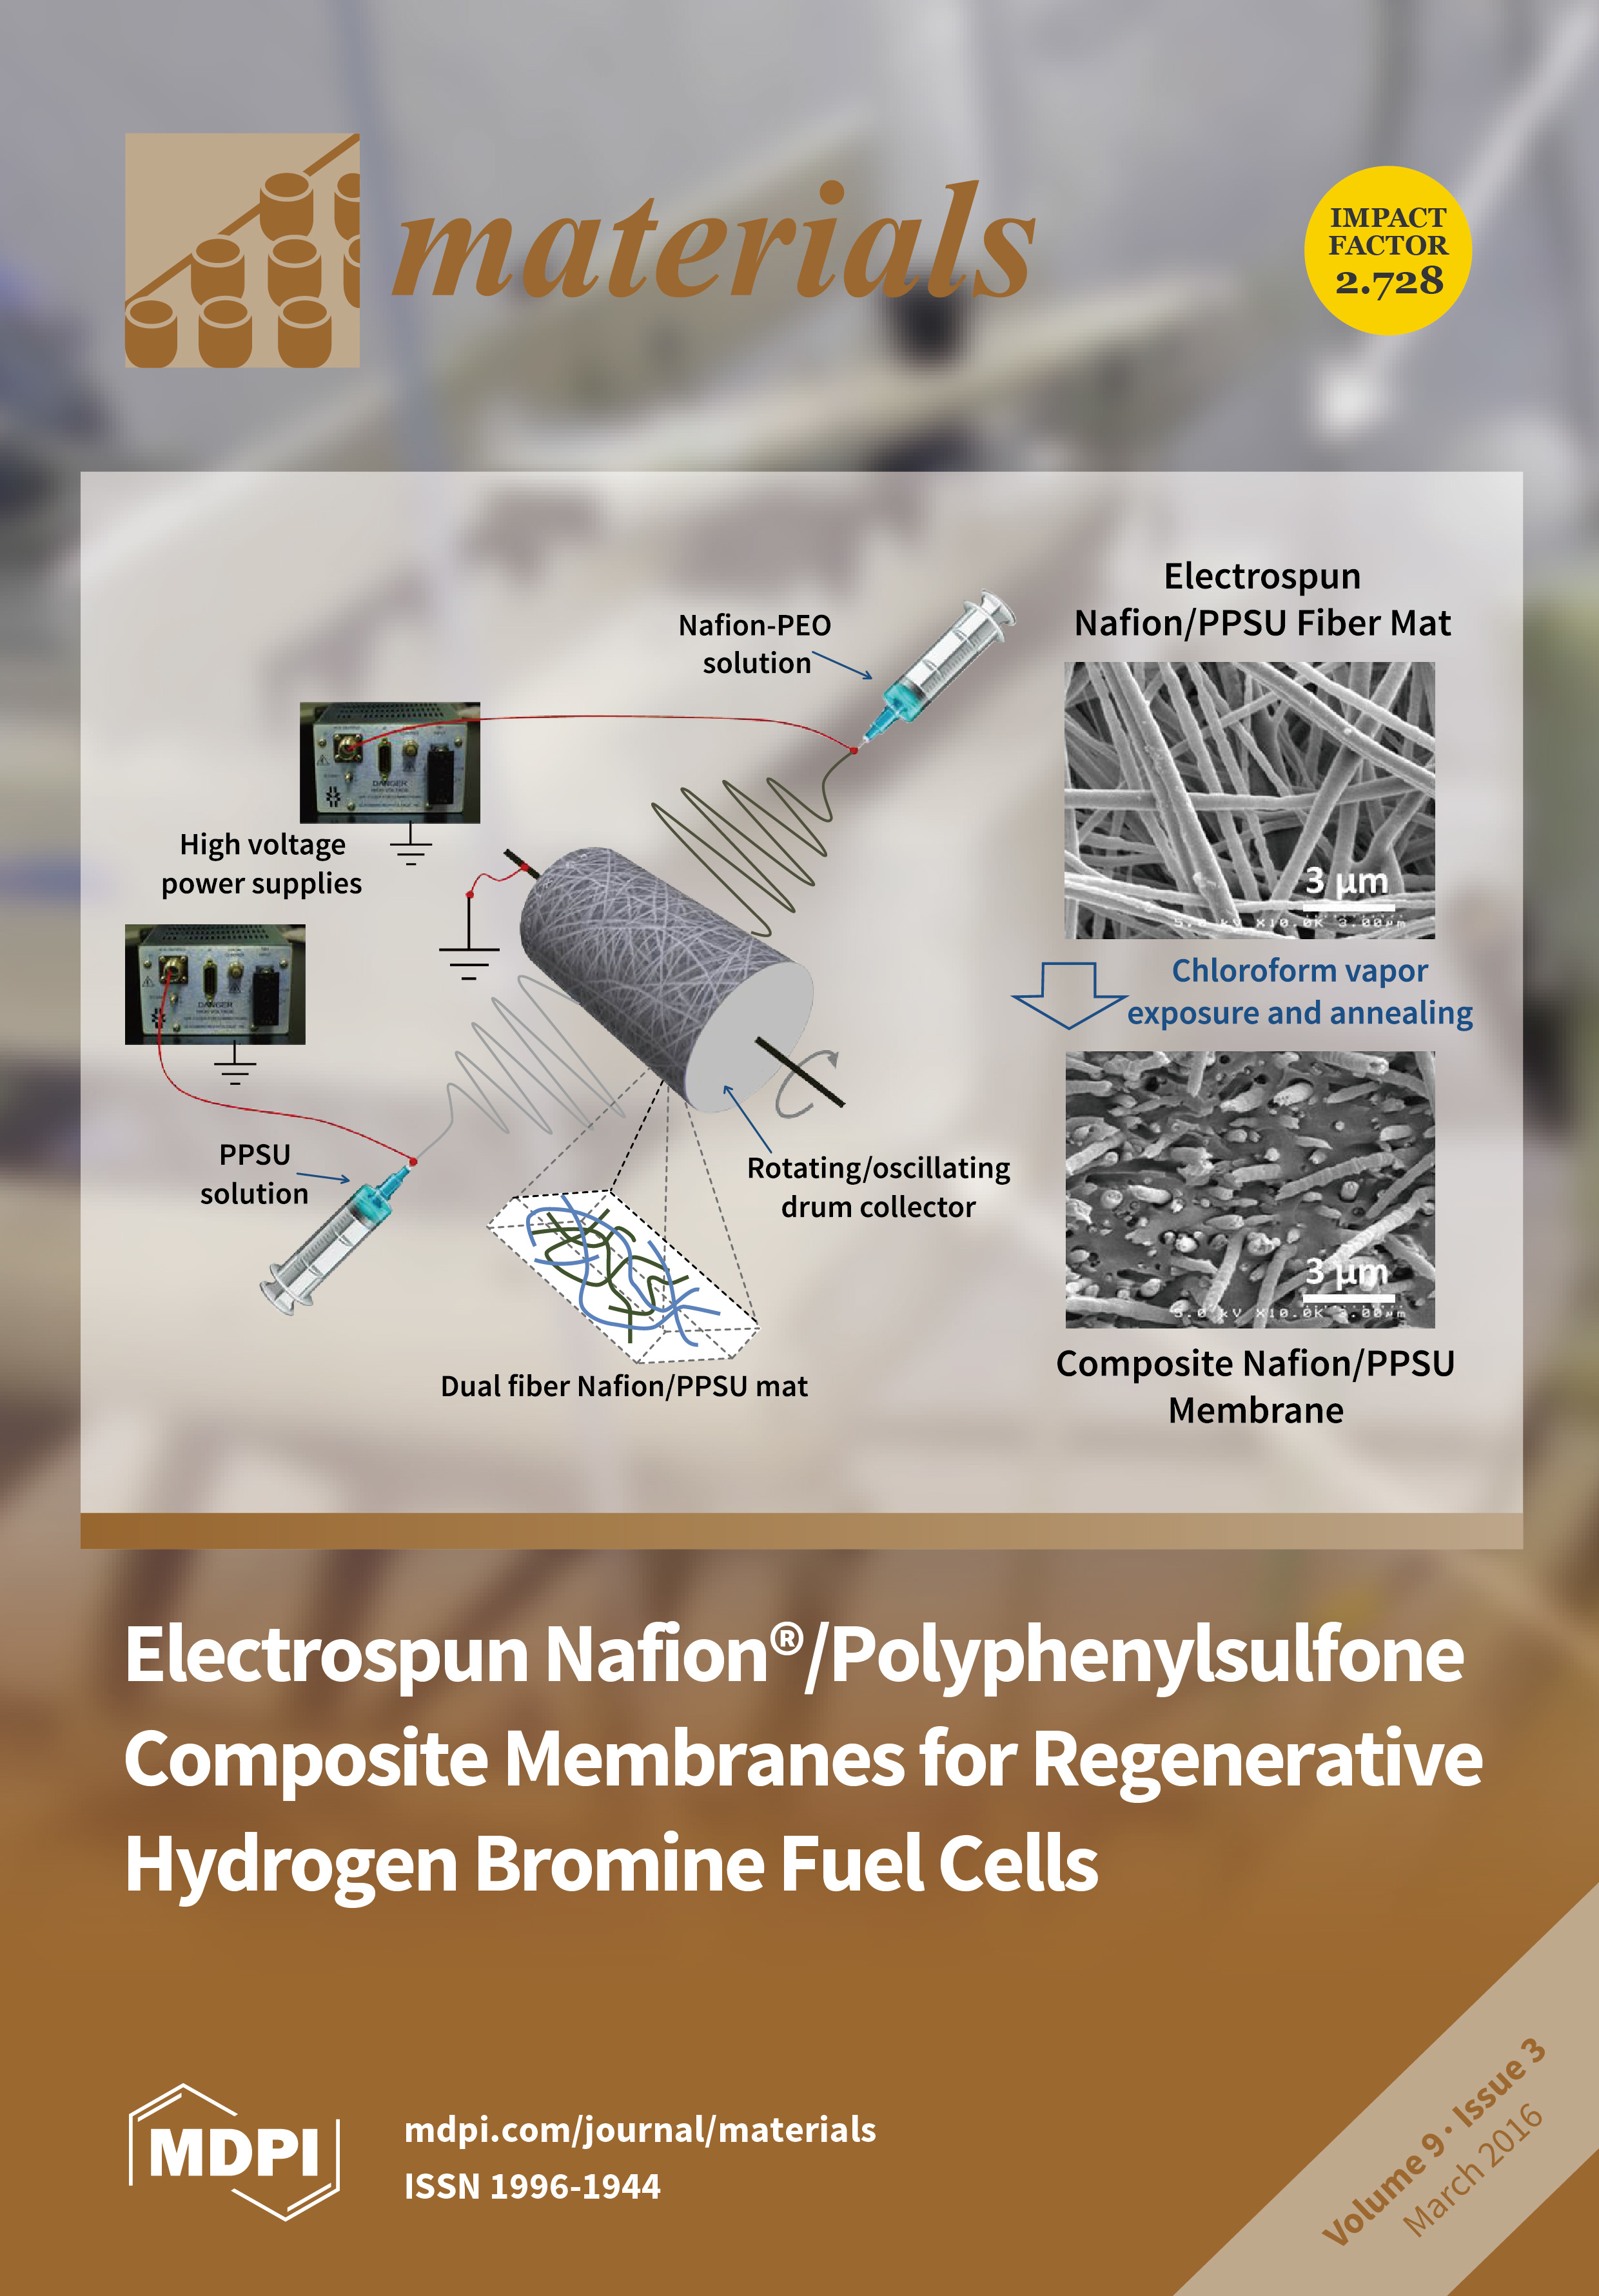 Materials march 2016 browse articles electrospun composite fuel cell membranes can overcome many limitations of conventional solution cast films nanofibers not only mechanically fandeluxe Image collections